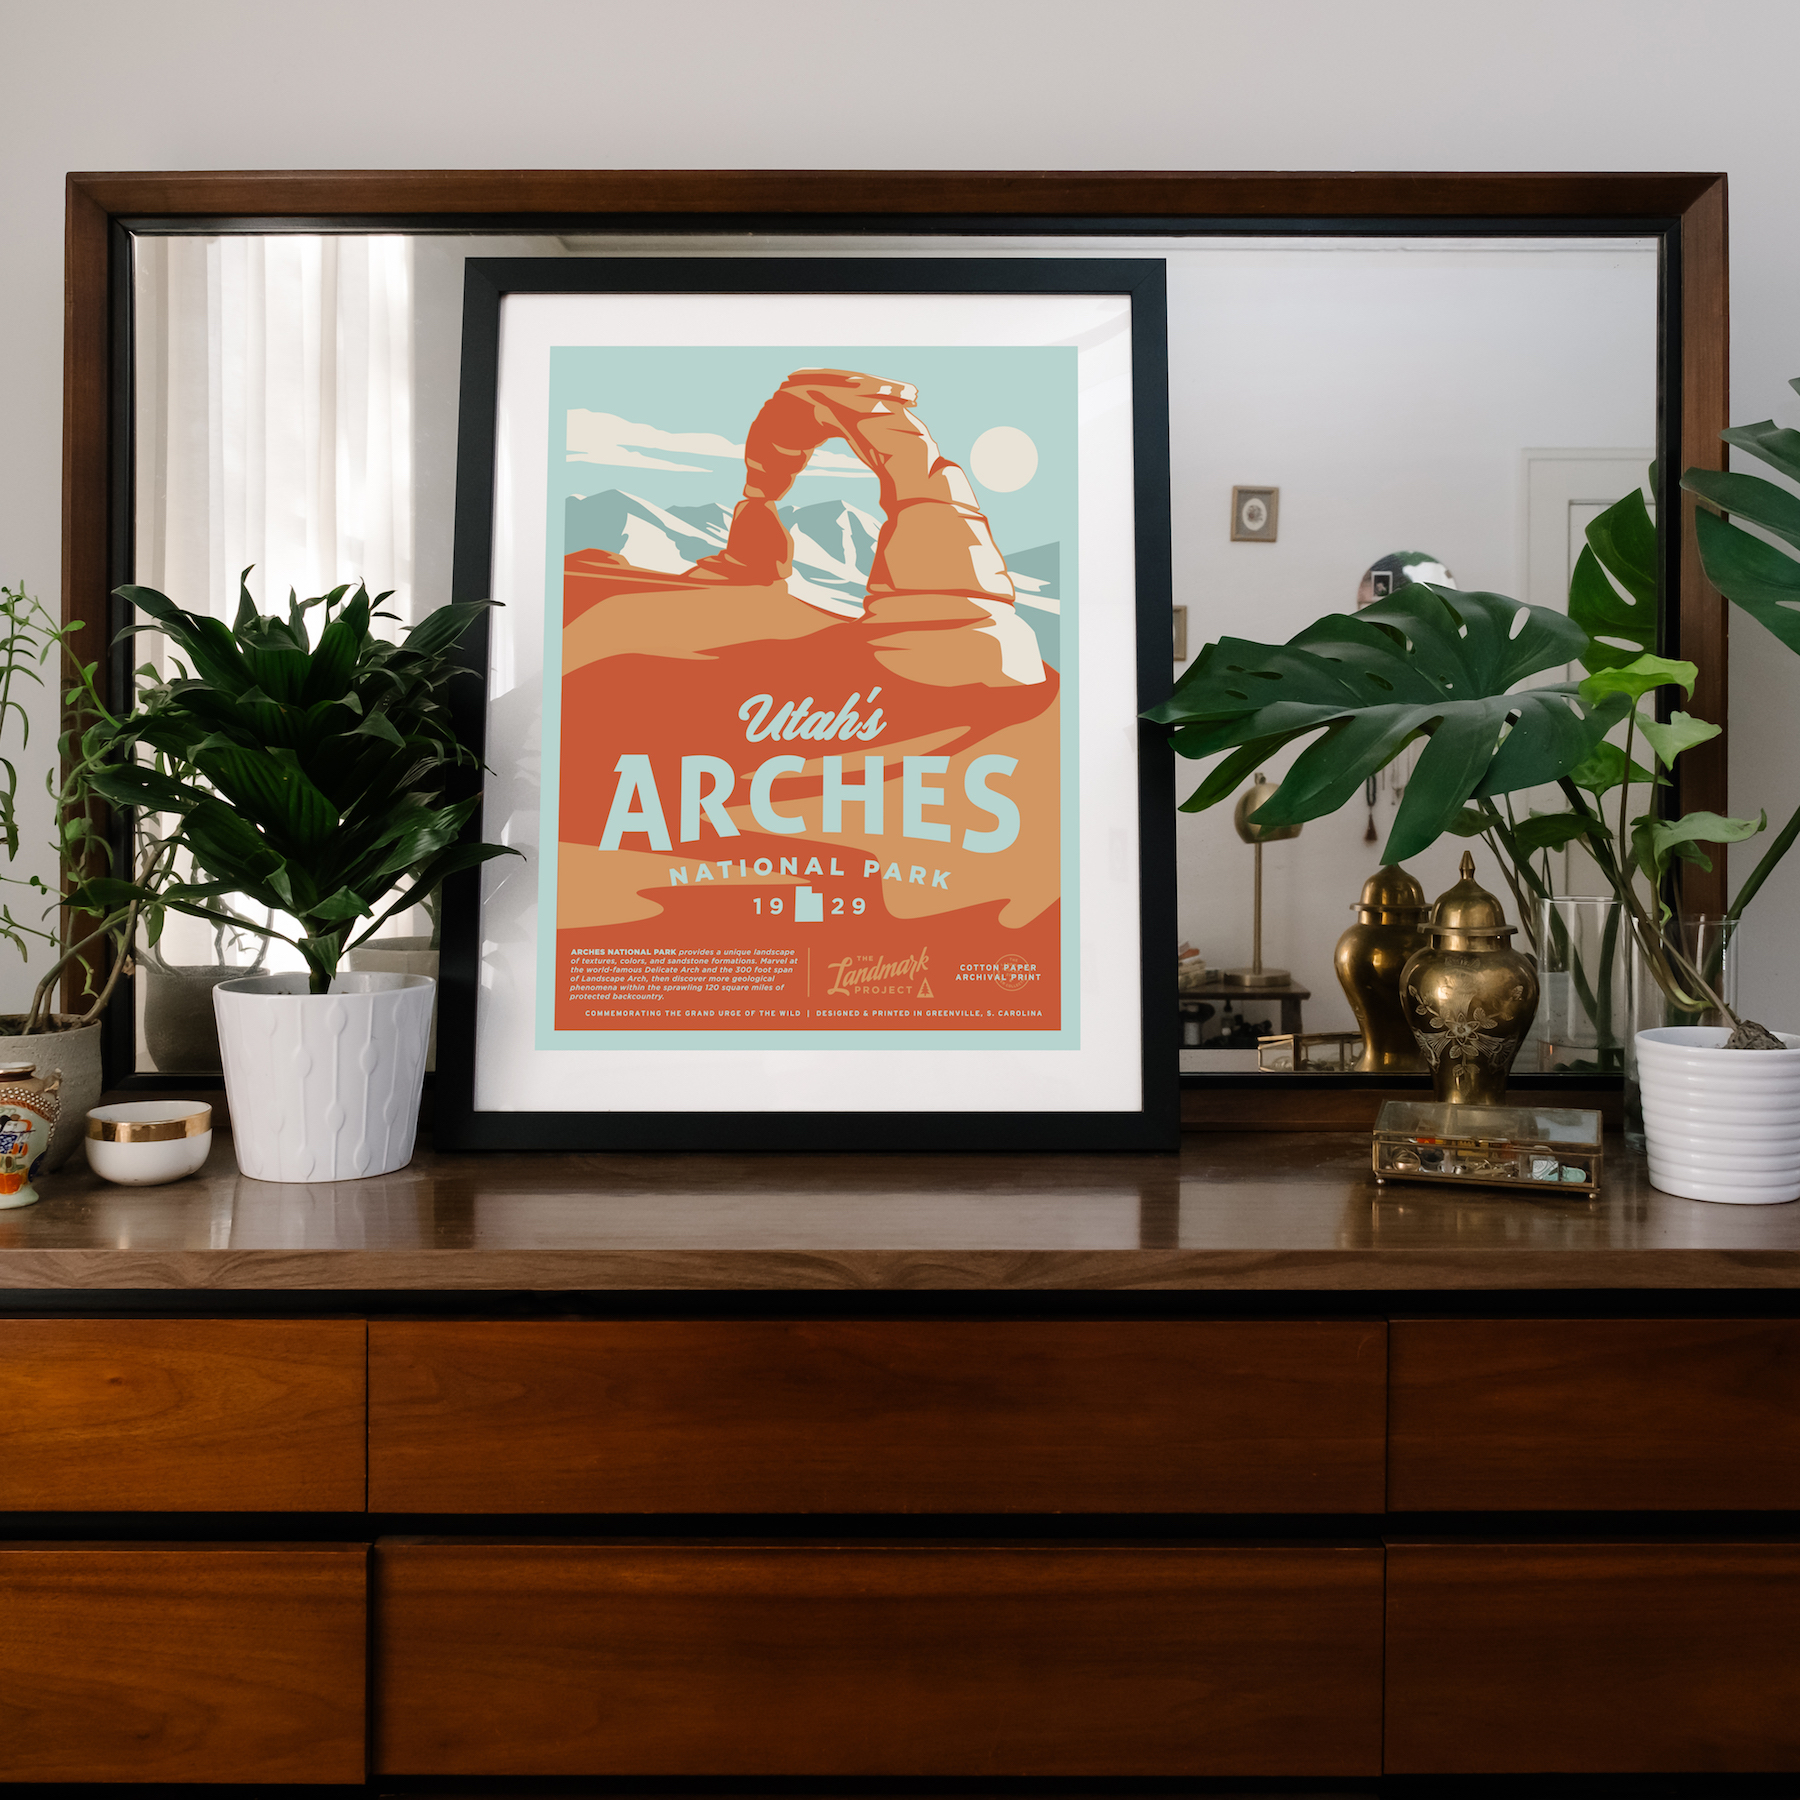 arches-poster.jpg